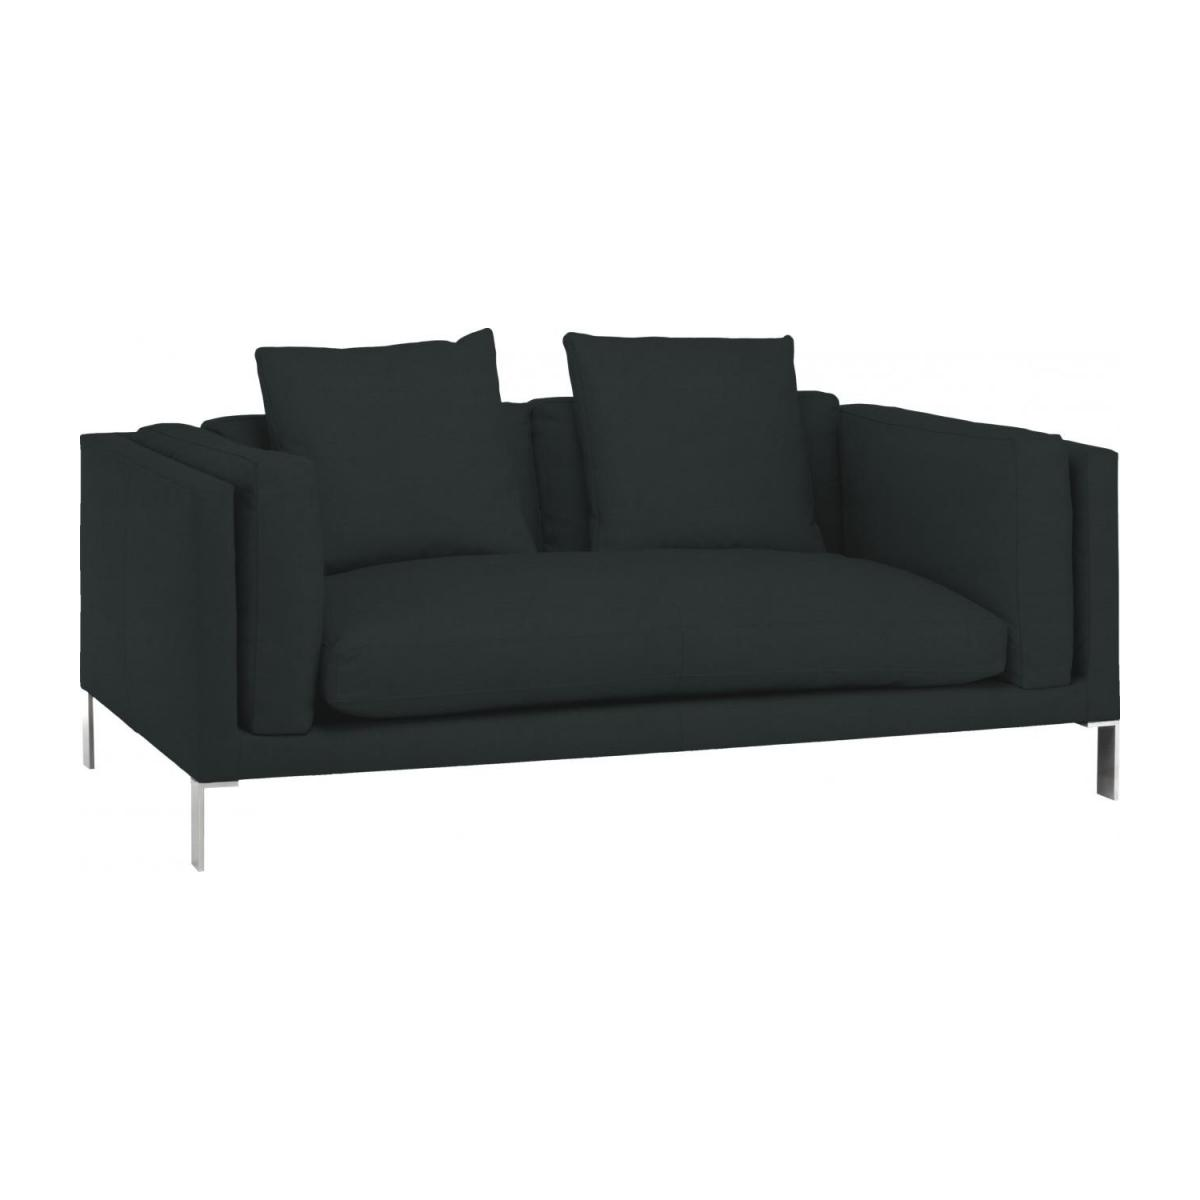 newman 2 sitzer sofa aus leder habitat. Black Bedroom Furniture Sets. Home Design Ideas